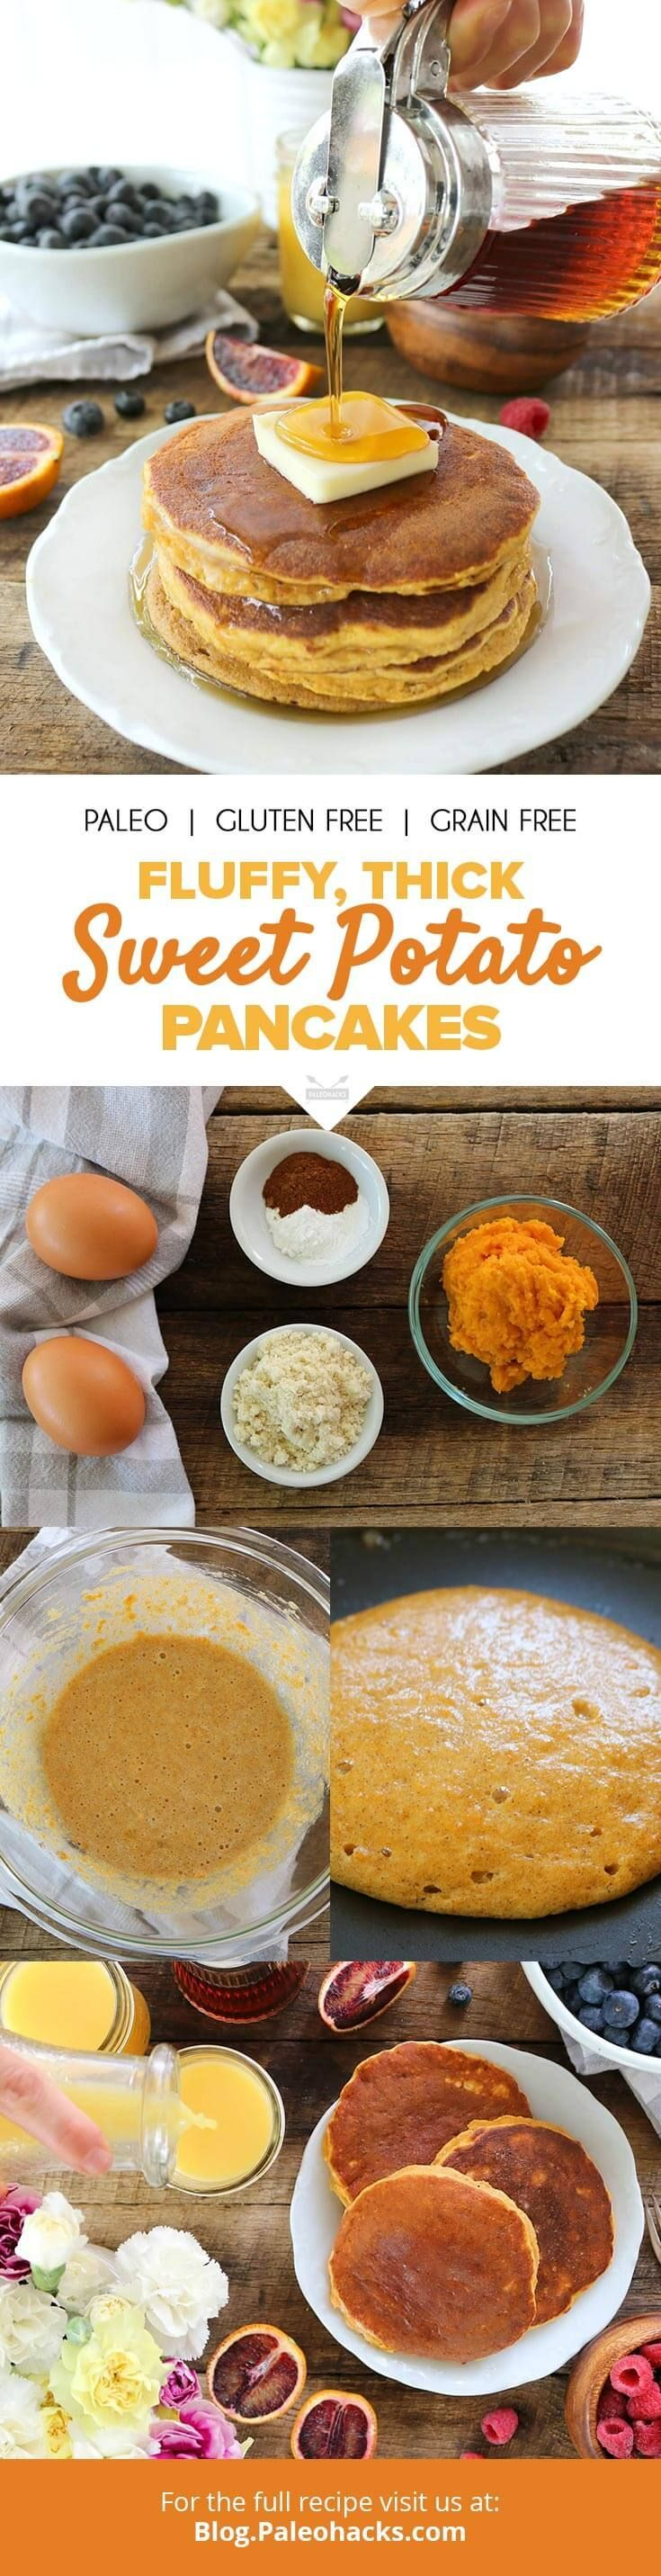 Fluffy and spiced, these sweet potato pancakes are just waiting to be smothered in grass-fed butter and maple syrup! Get the recipe here: http://paleo.co/SWPpancakes